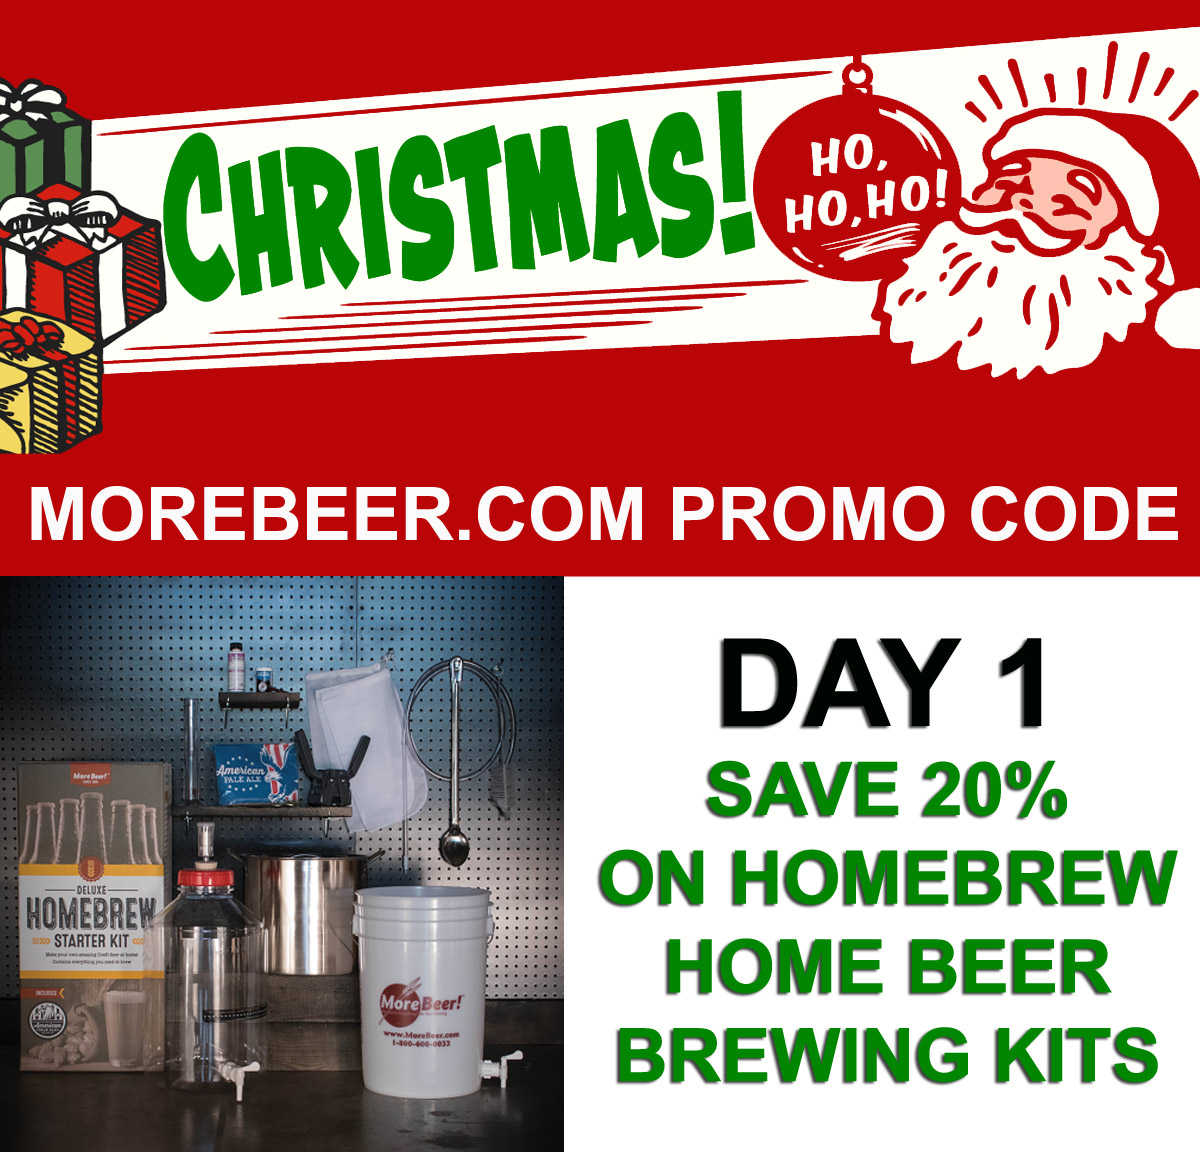 Coupon Code For Save 20% On Homebrewing Starter Kits With This MoreBeer.com Promo Code Coupon Code